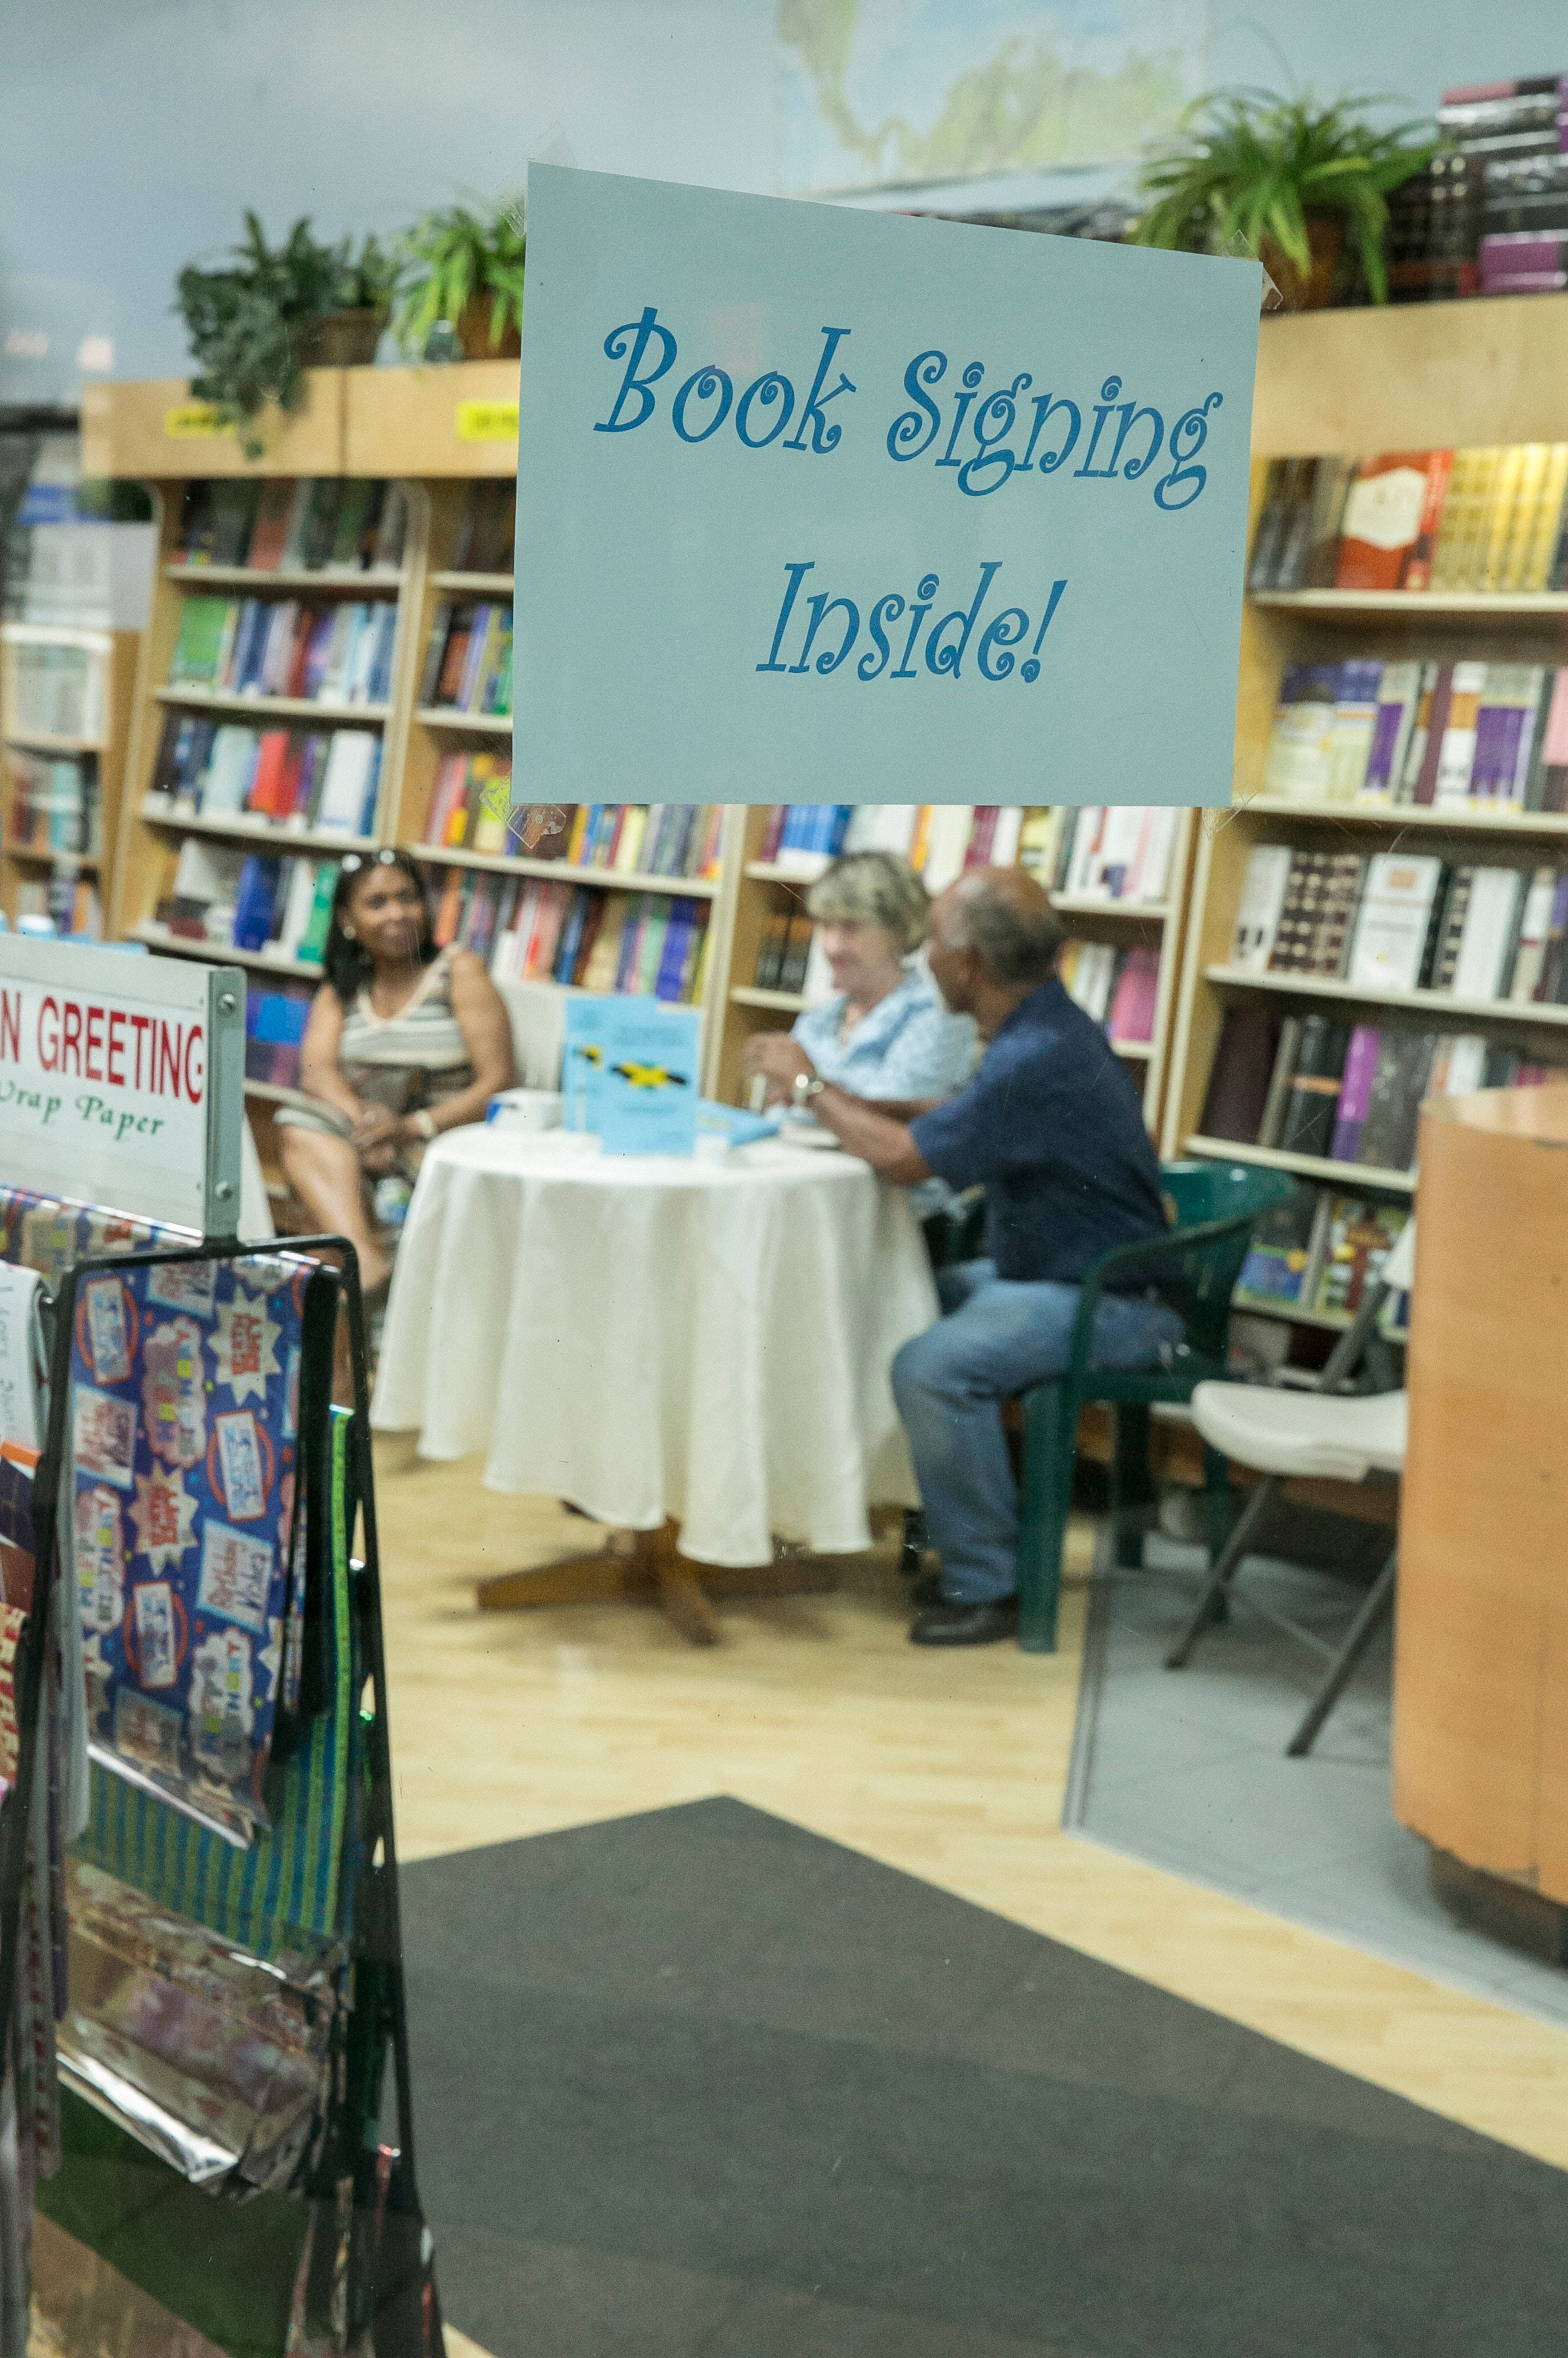 Kingston Bookshop At Liguanea Post Mall March 16 2018 With